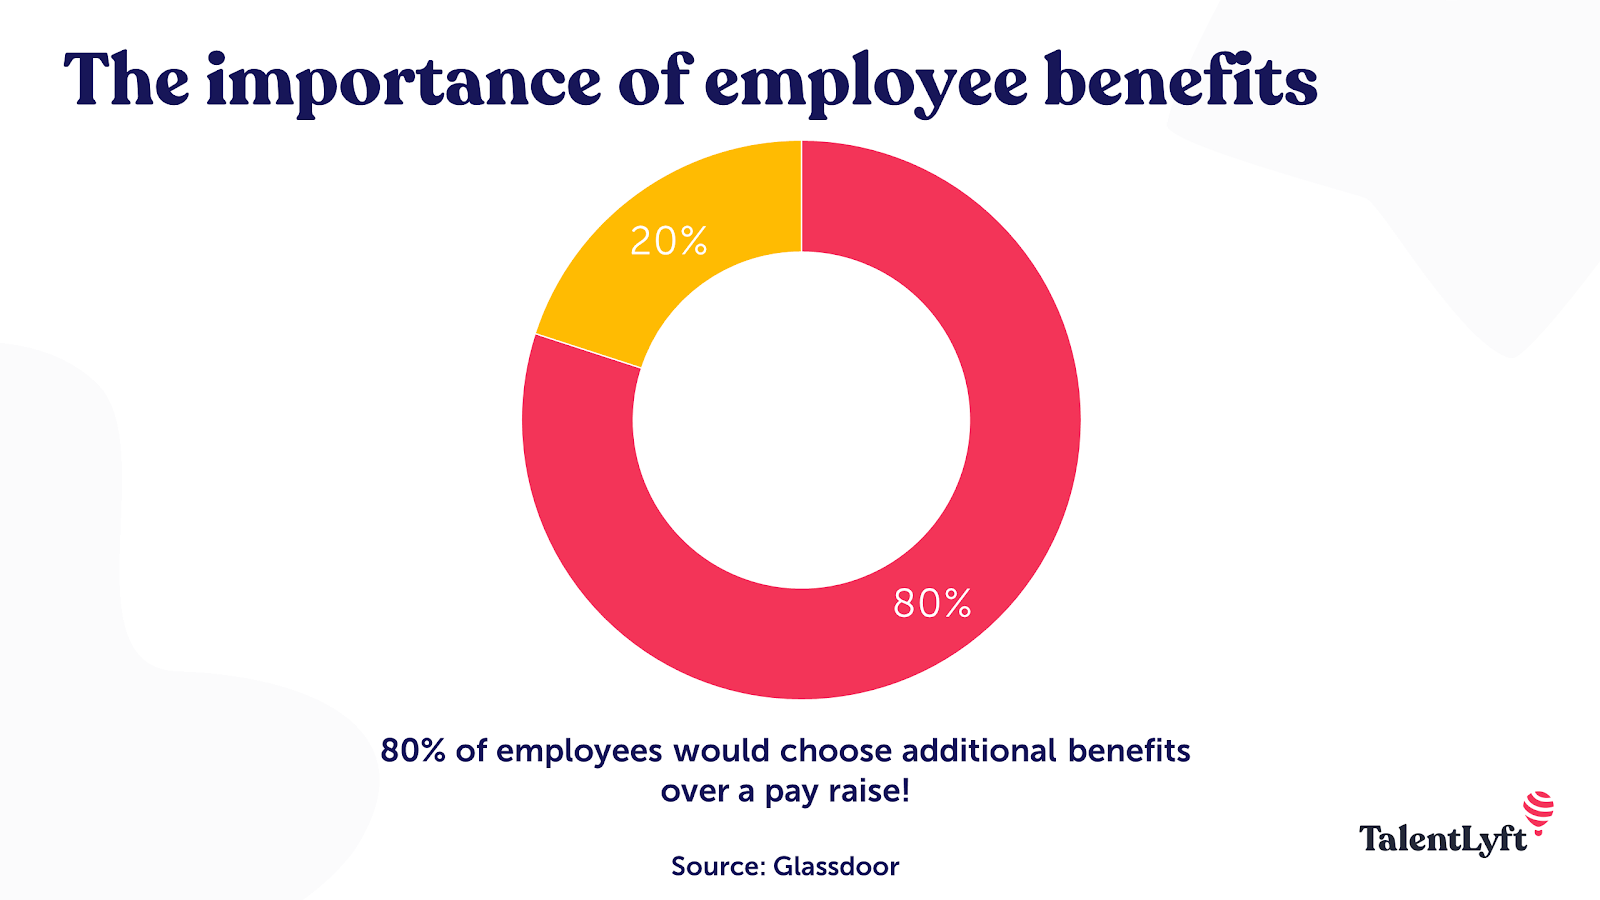 Importance of employee benefits for recruiting